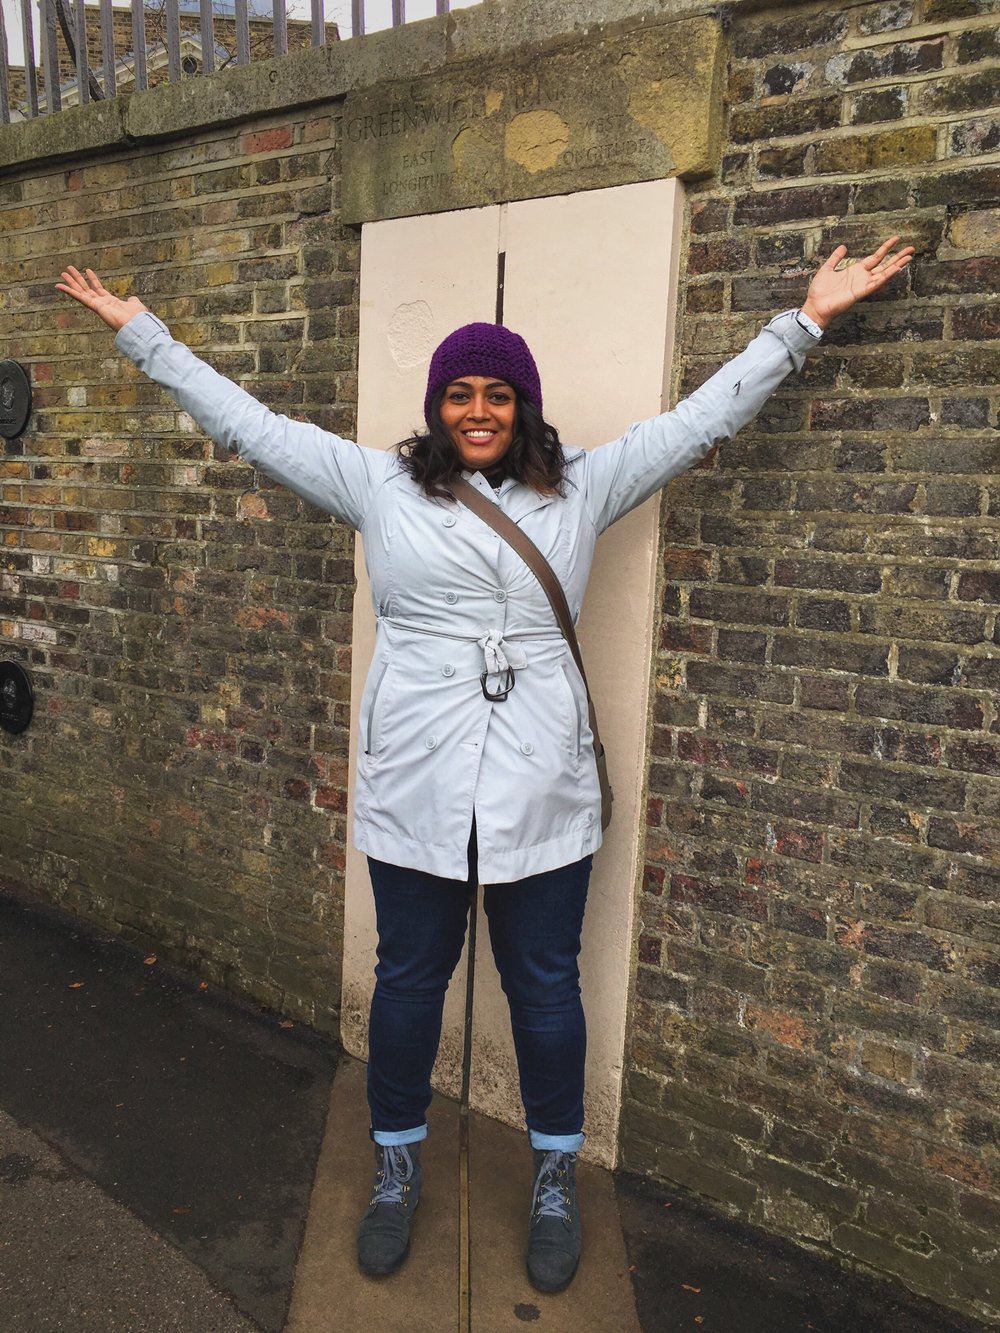 9 years later, I'm still being a tourist in London. Straddling the Prime Meridian (November 2015)